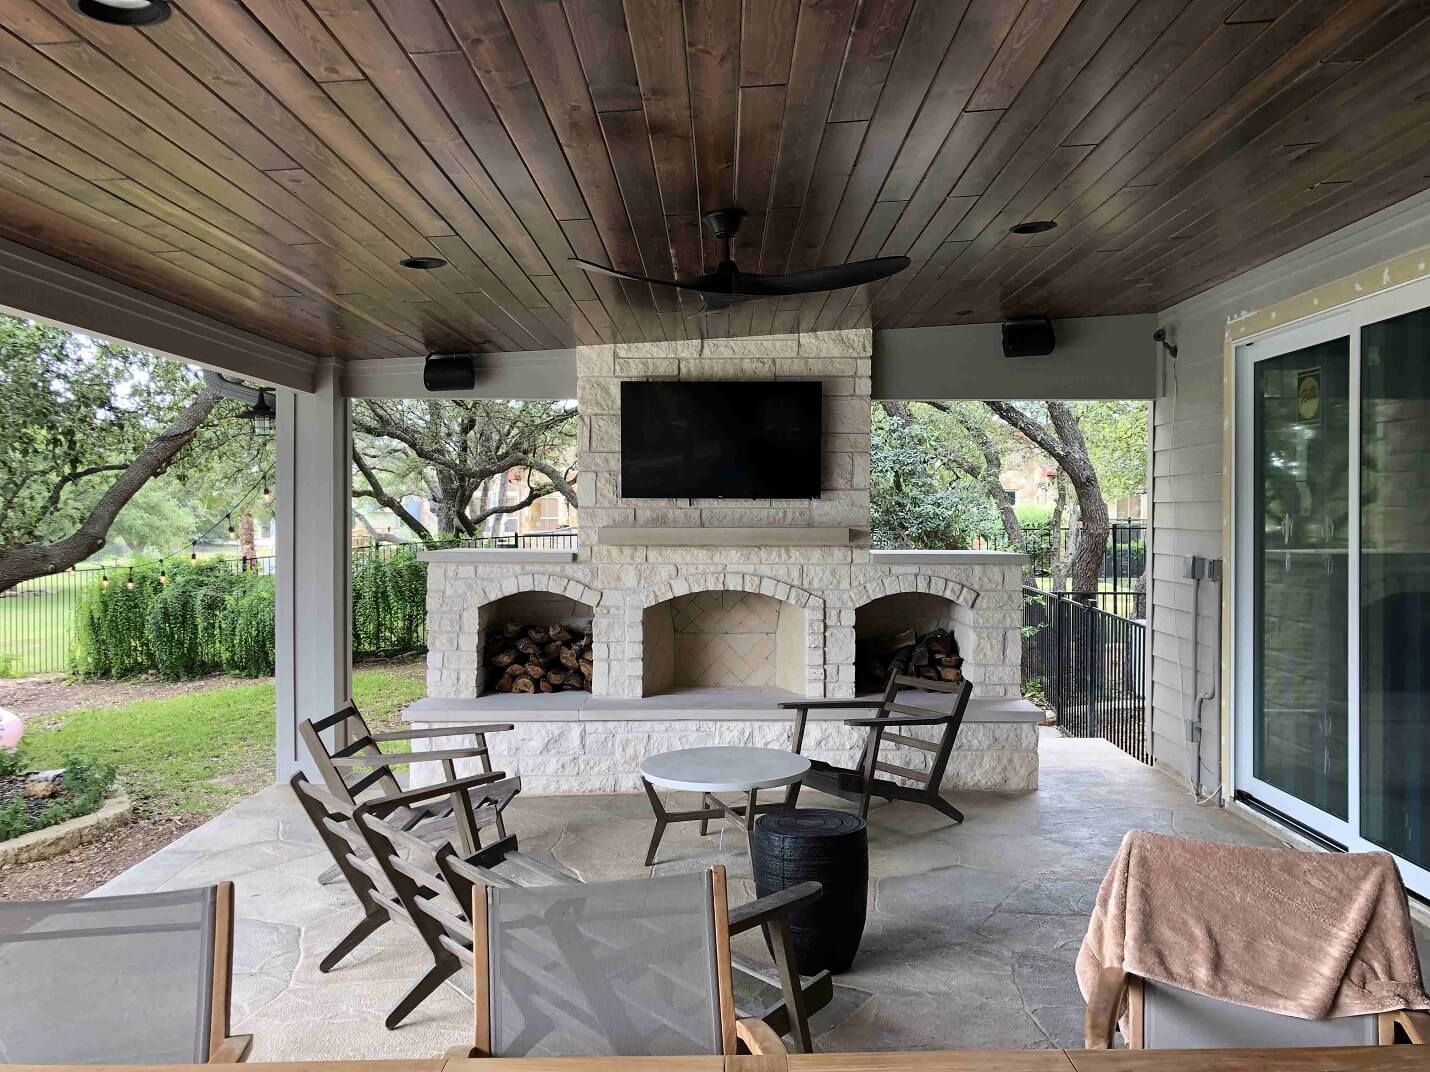 Outdoor fireplace attached to covered patio